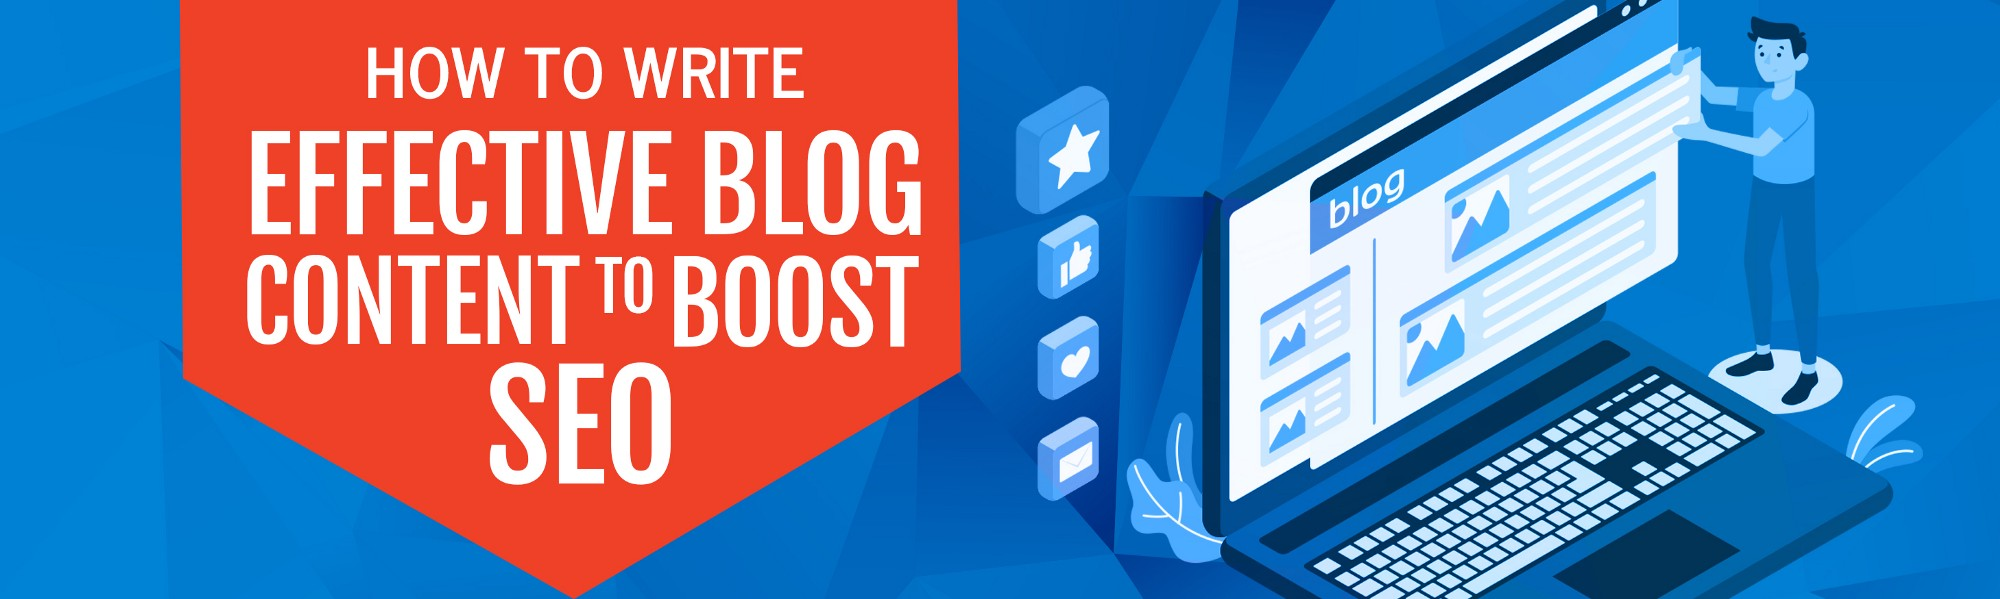 How to Write Effective Blog Content to Boost SEO